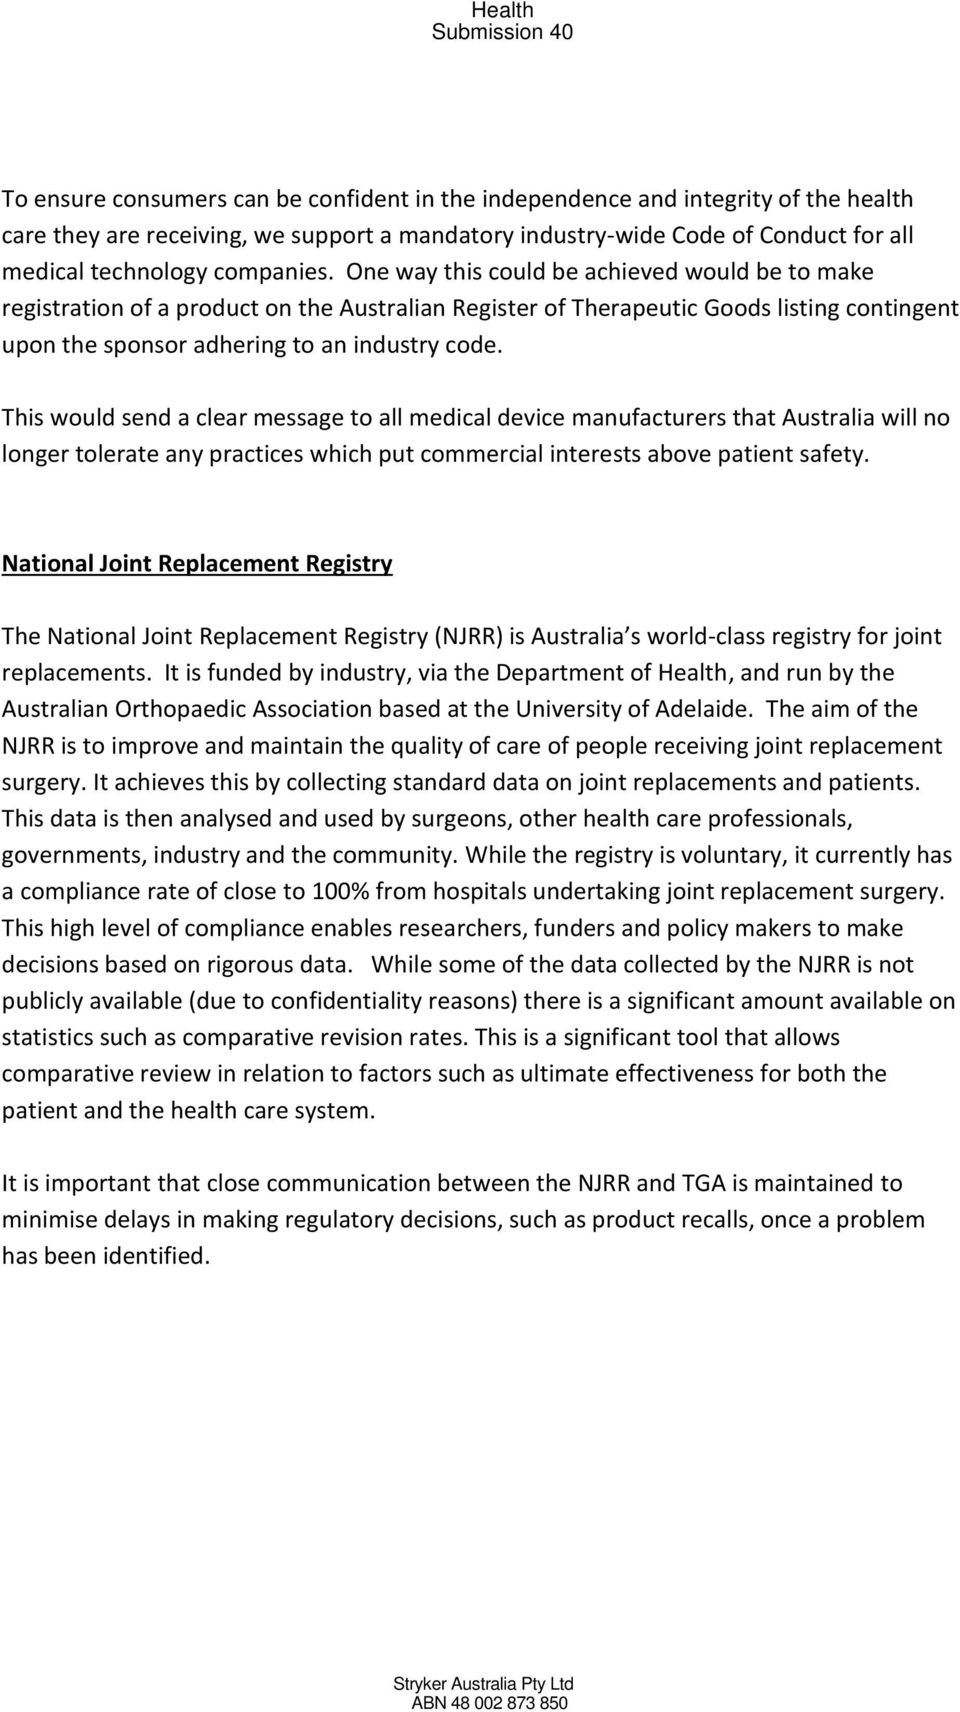 This would send a clear message to all medical device manufacturers that Australia will no longer tolerate any practices which put commercial interests above patient safety.